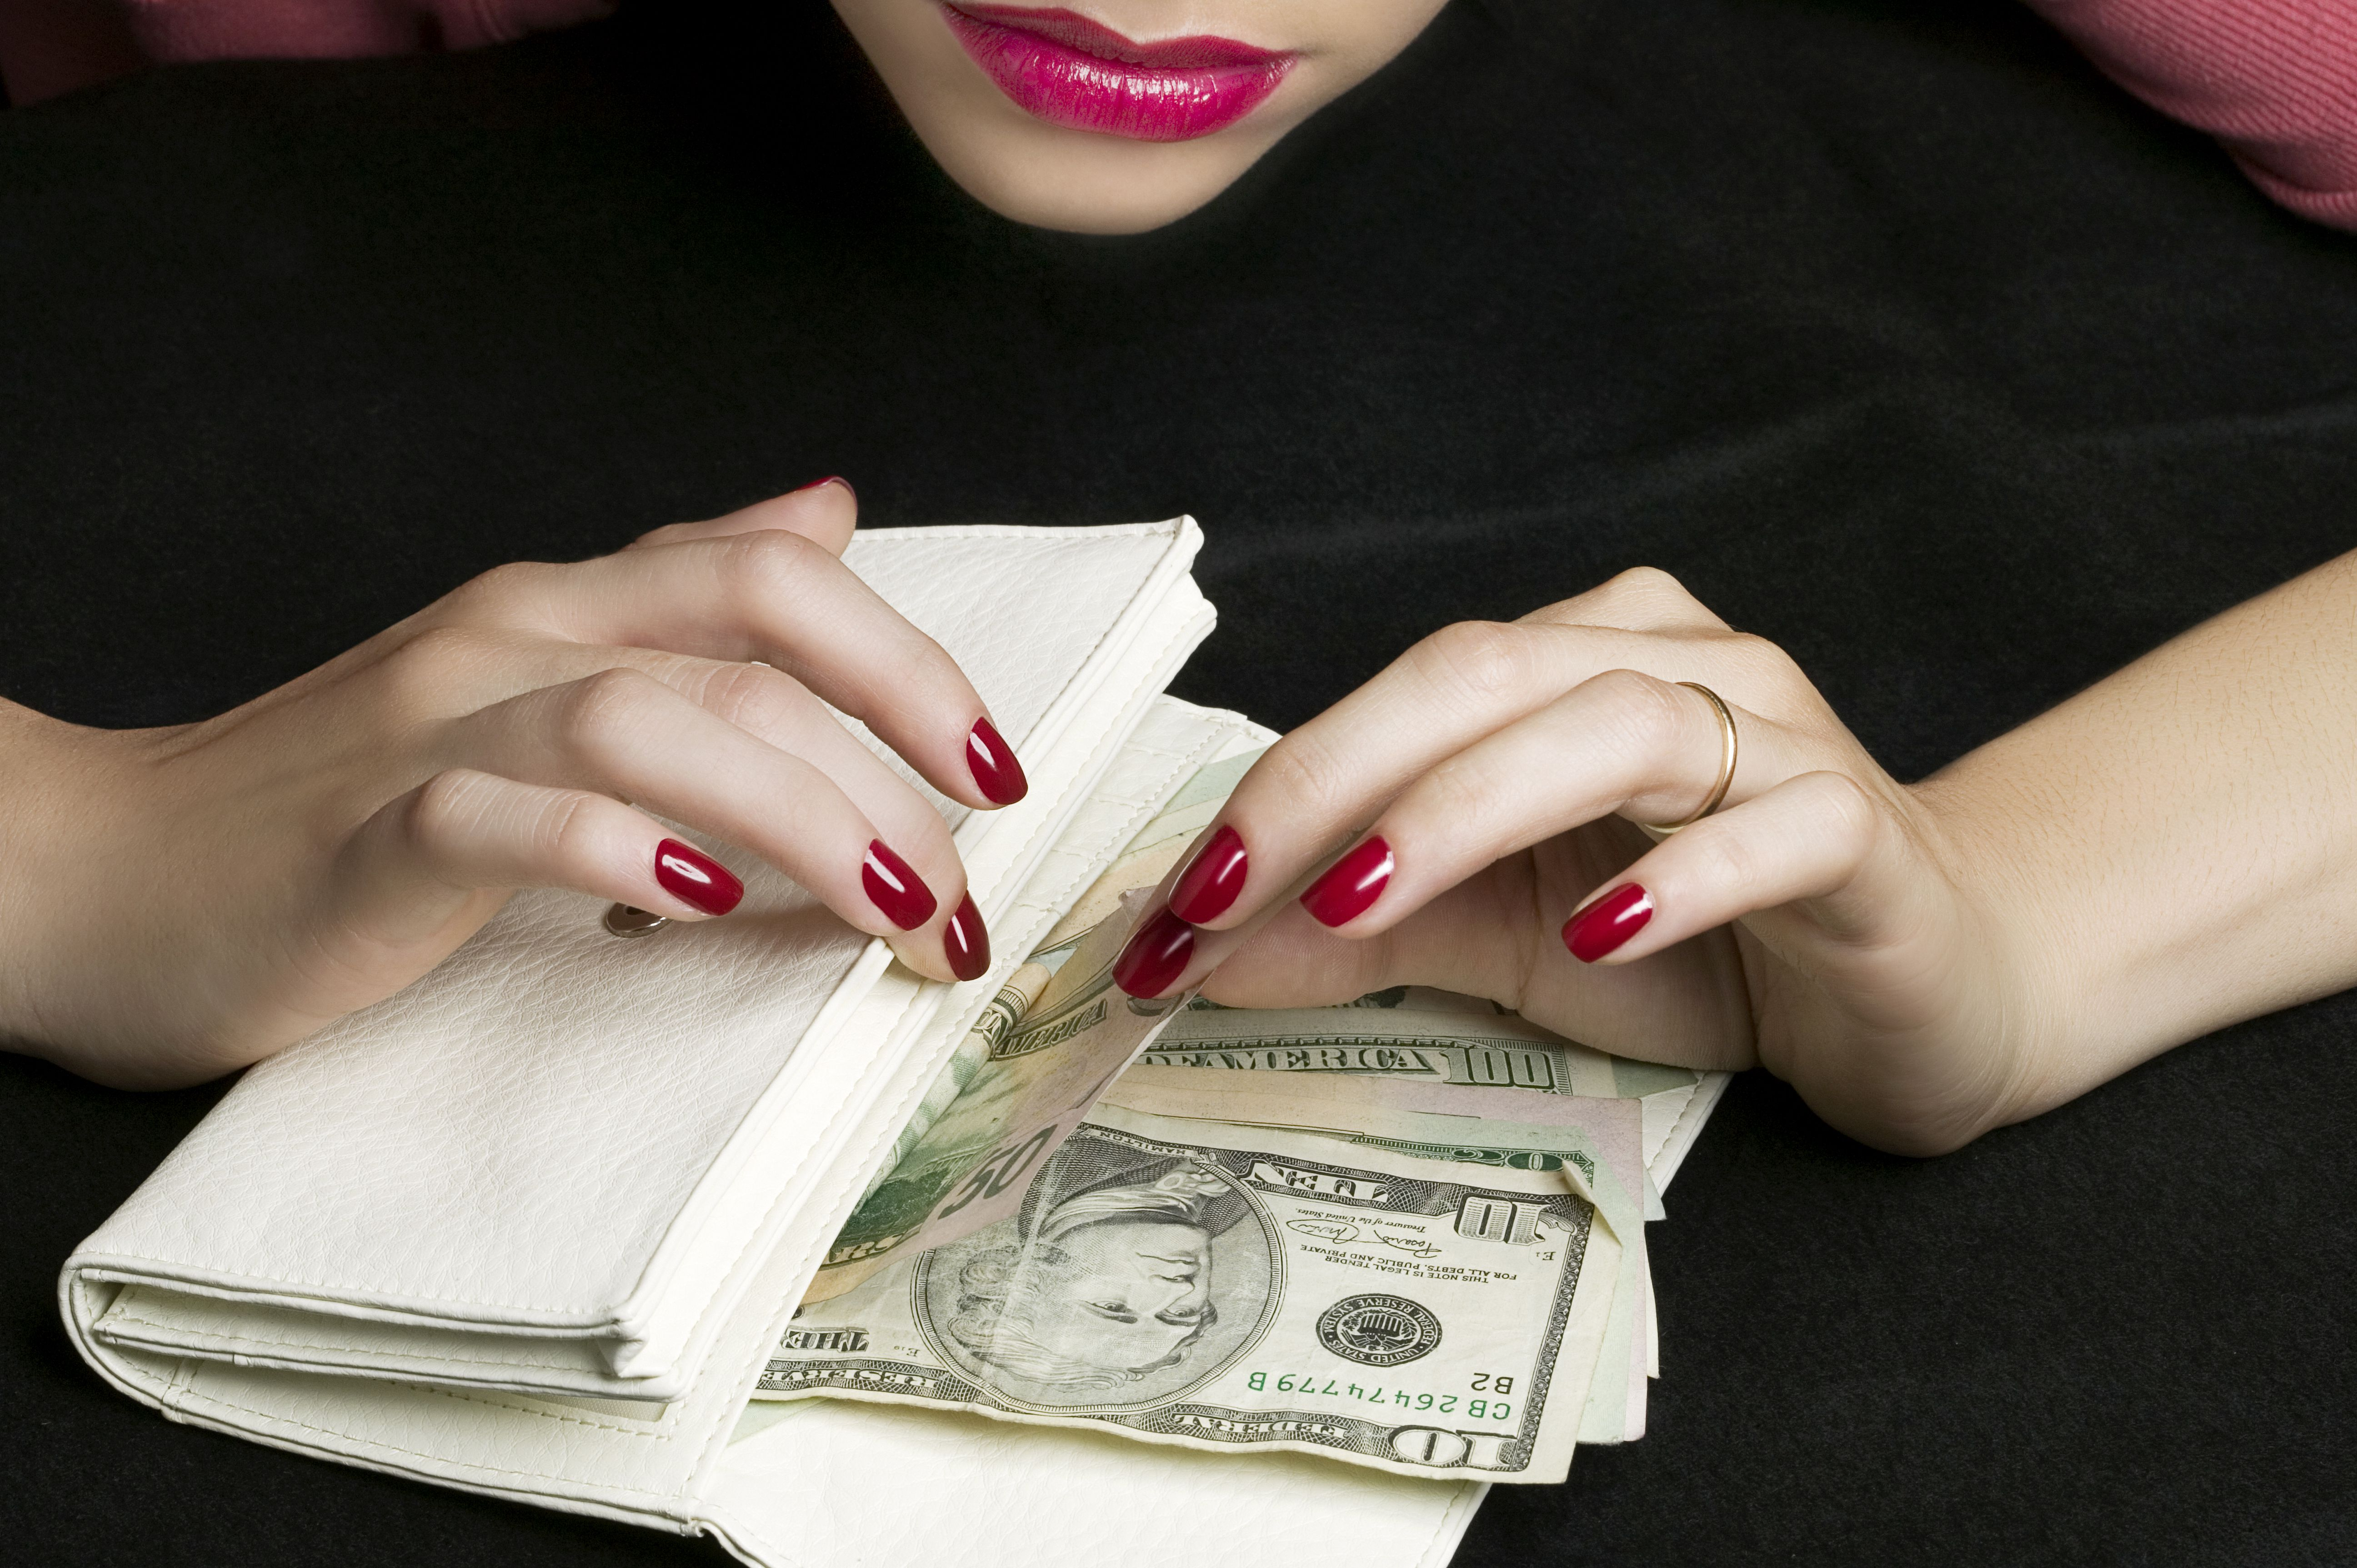 How Long To Pay Off Car Loan With Extra Payments >> Should I Pay Off My Car Loan Early?